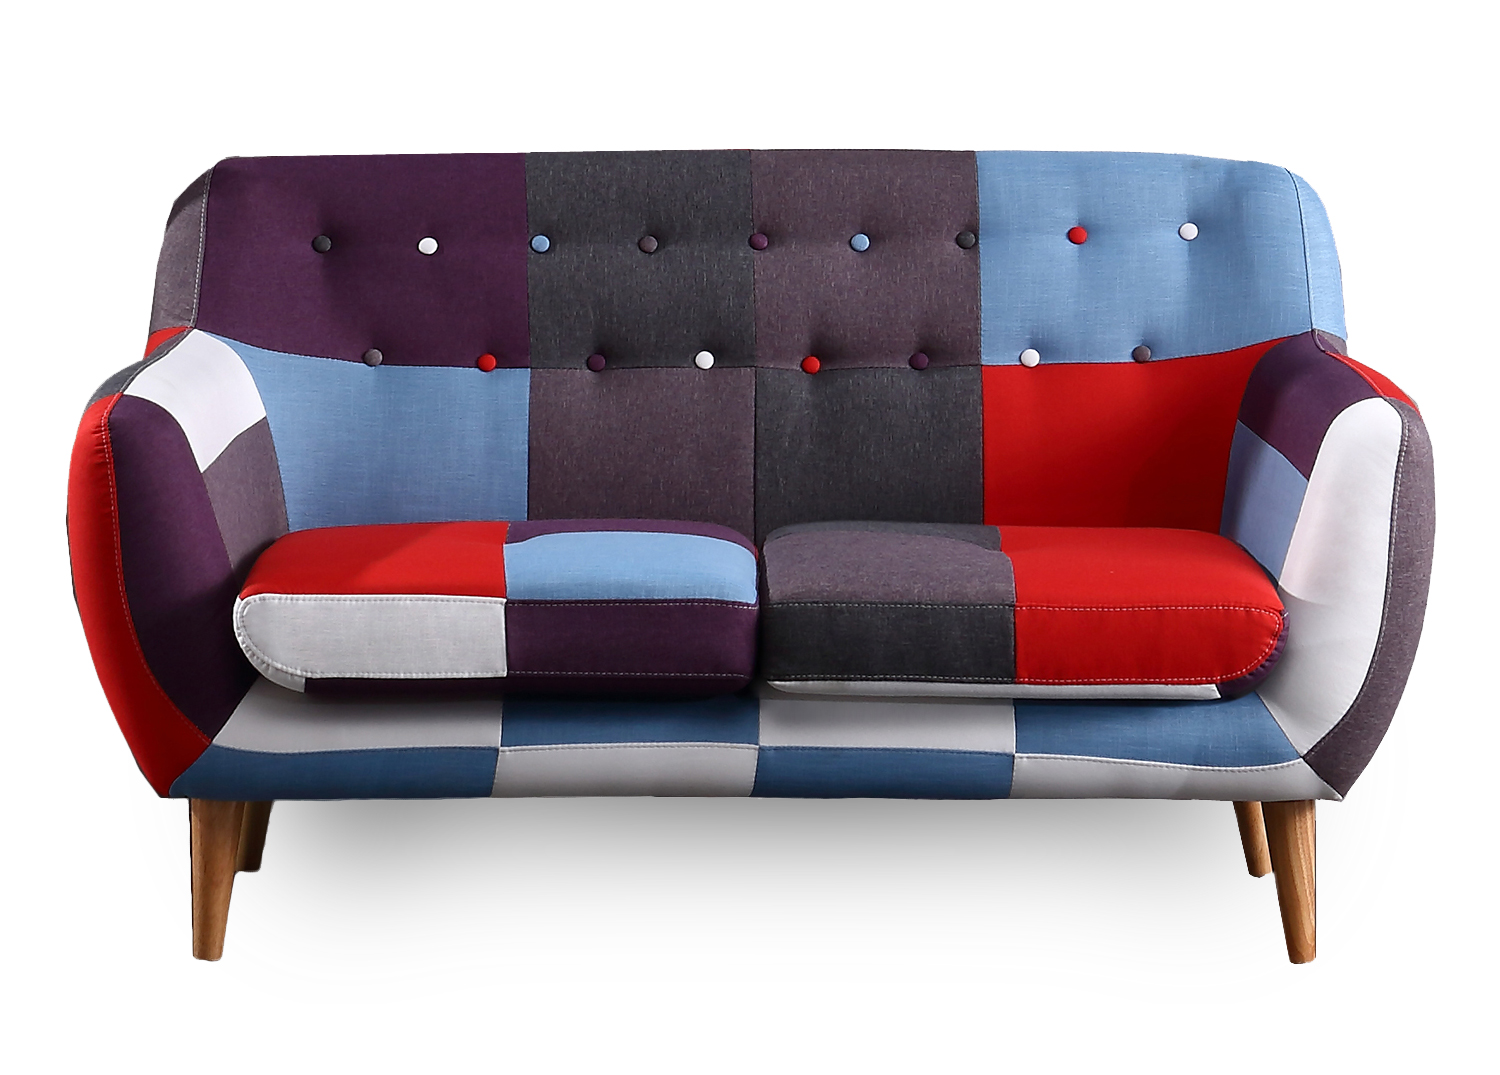 2 Seater Multi Coloured Patchwork Sofa - Ideal for small space living